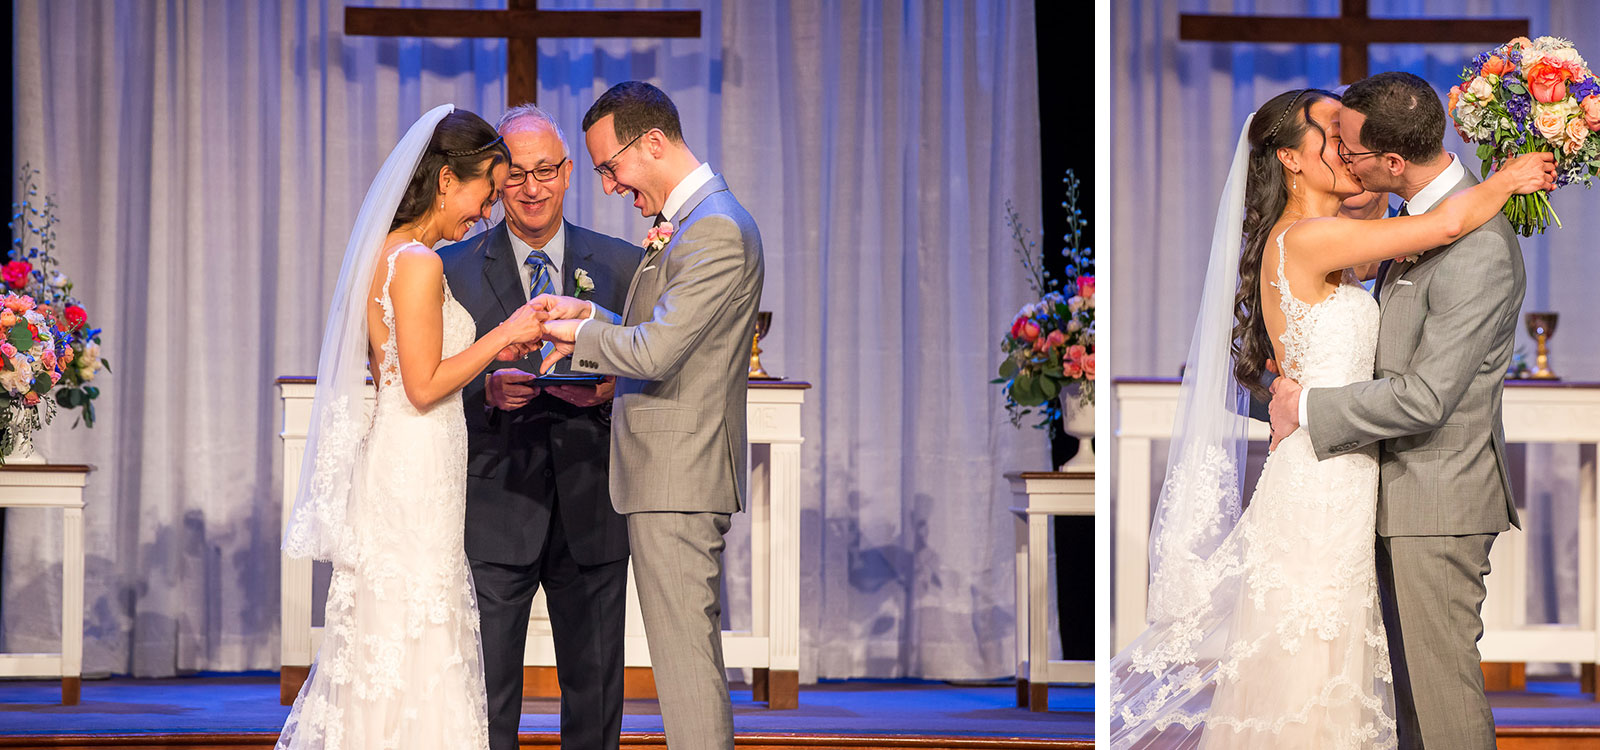 Eric_and_Christy_Photography_Blog_Wedding_Anne_Michael-53-54